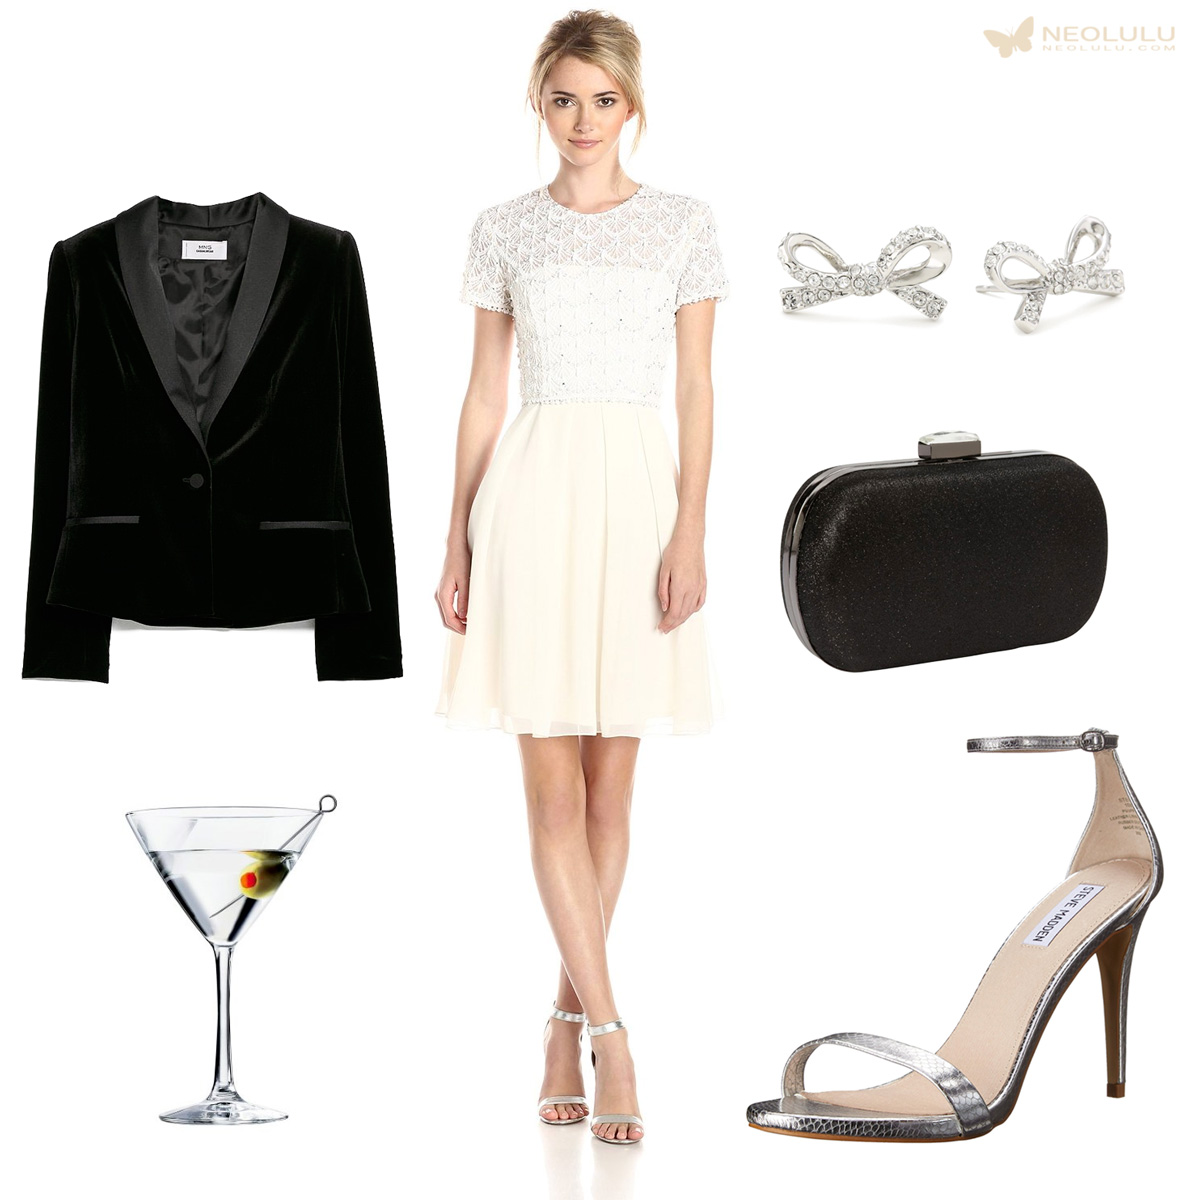 Lace & Sparkle: French Connection Dress, Velvet Blazer, Steve Madden Sandal, Clutch